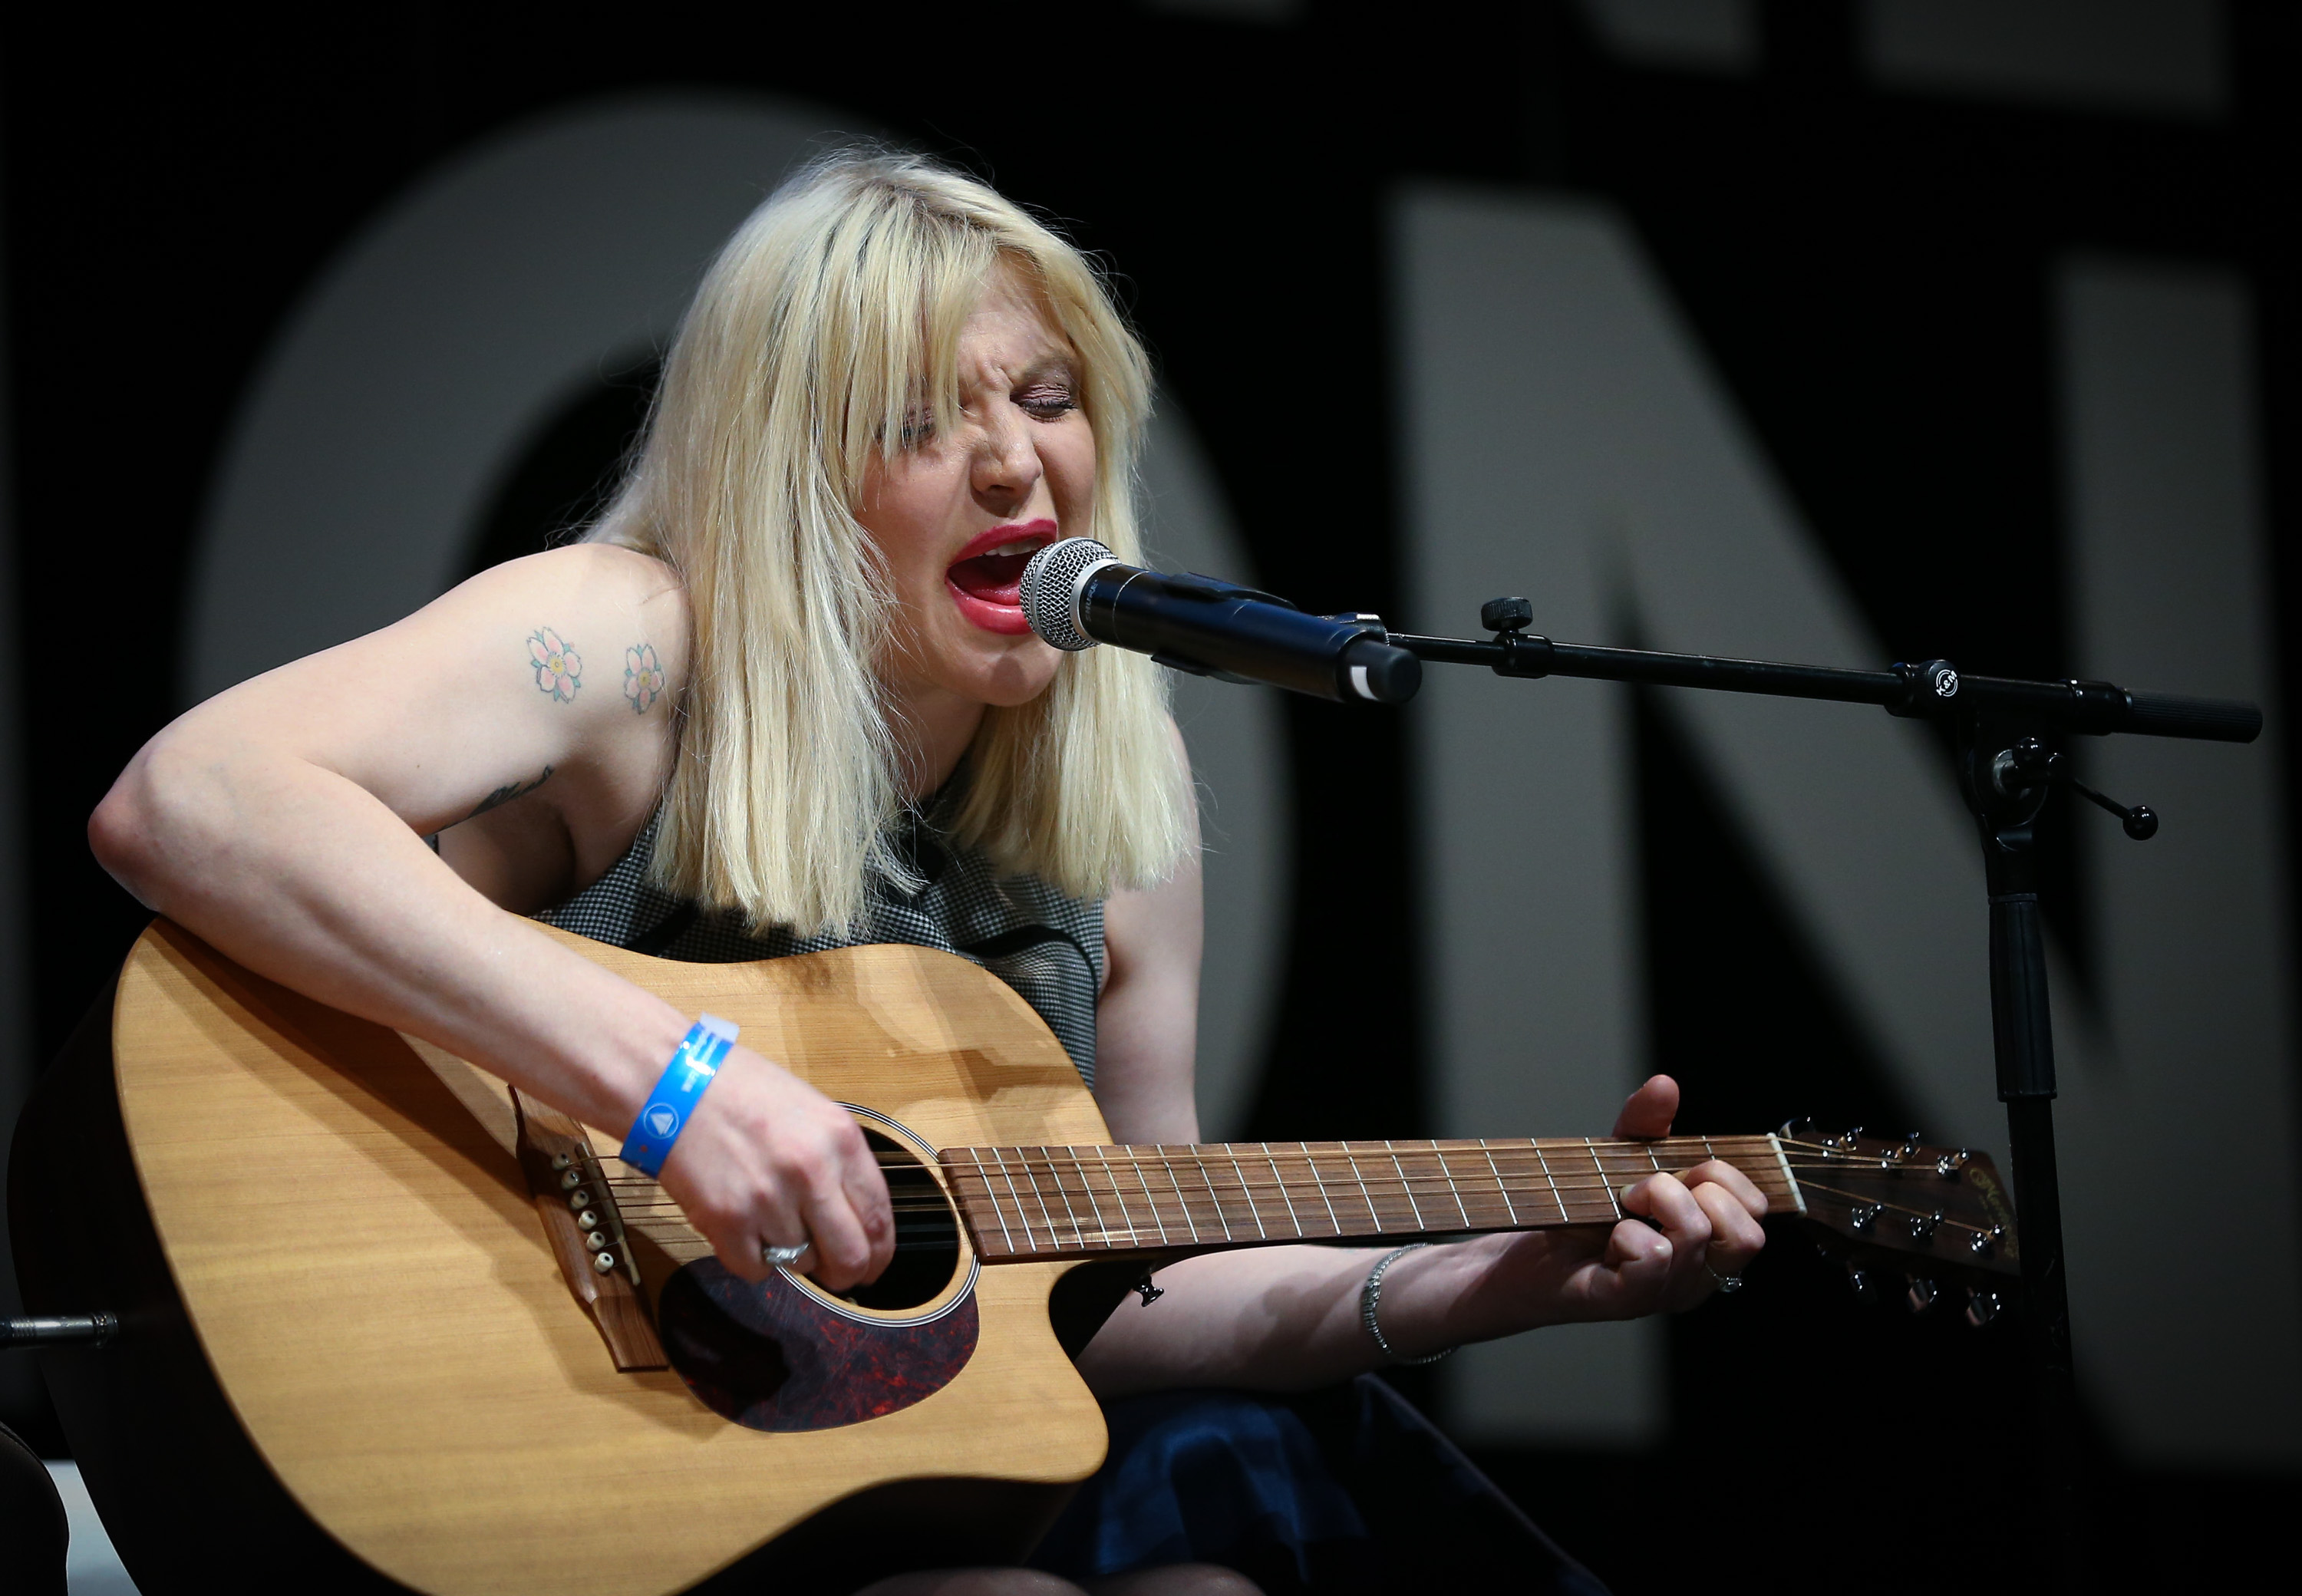 Courtney Love Is Now an Opera Singer